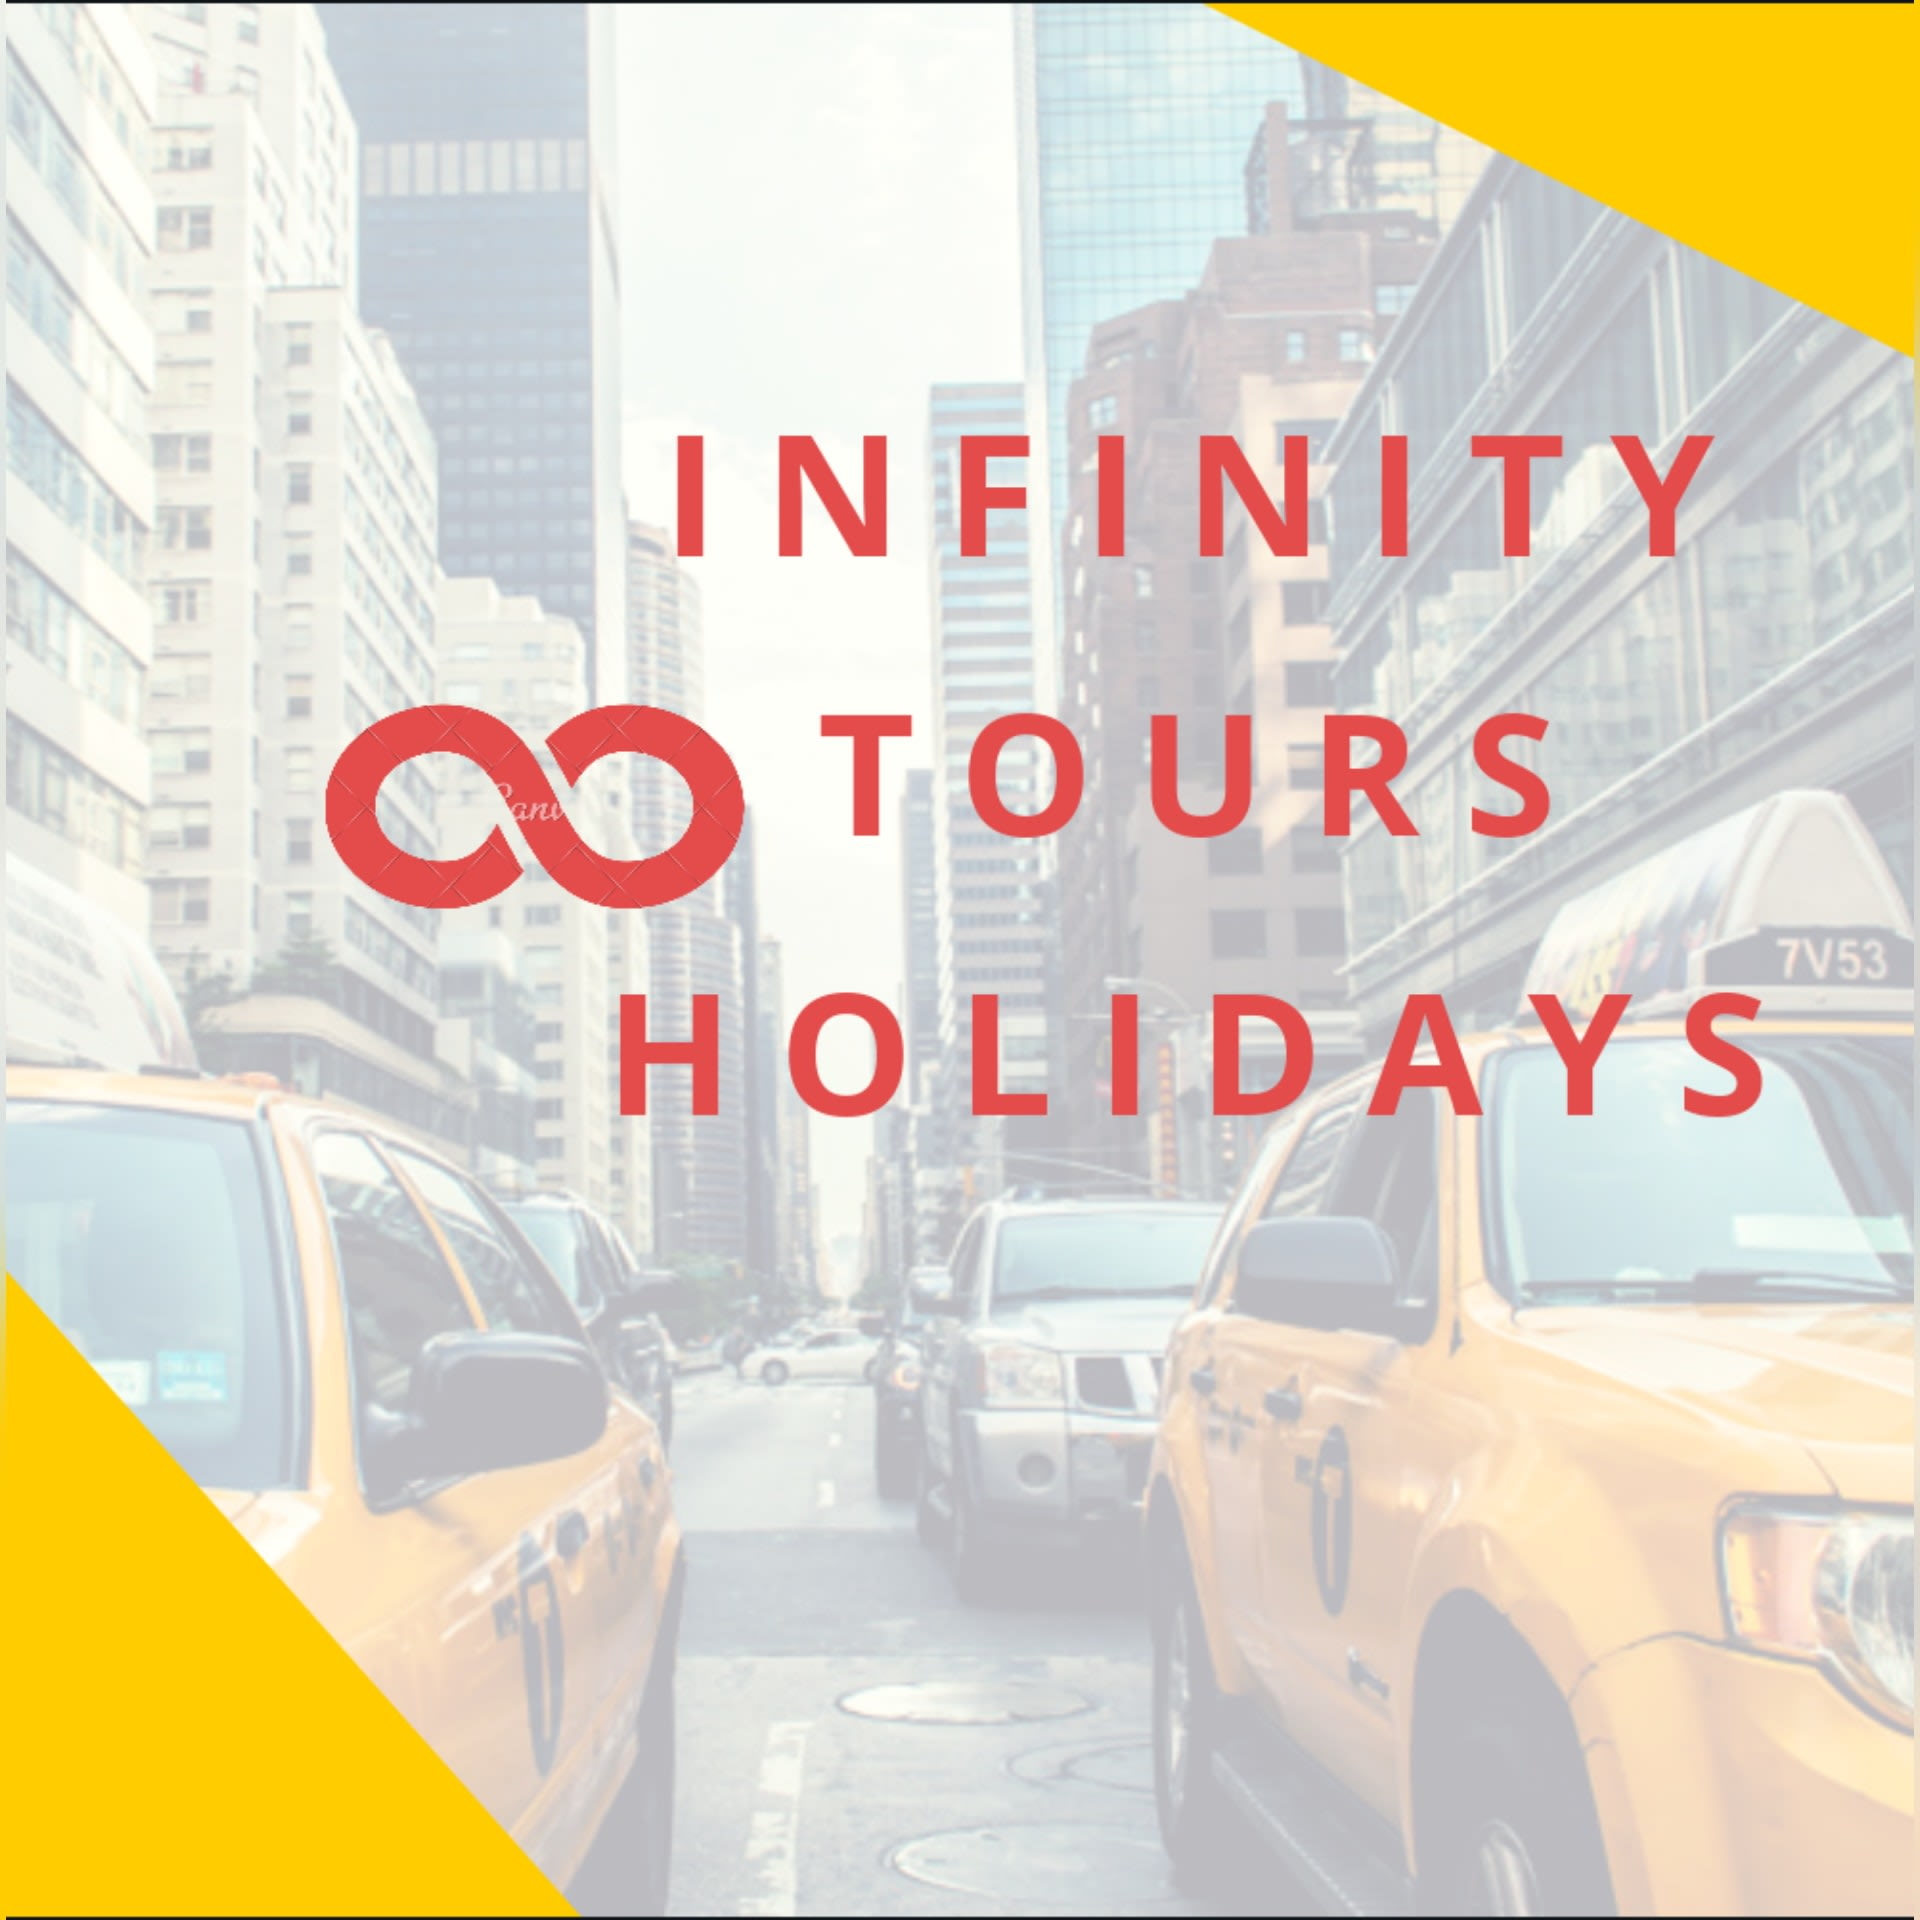 Infinity Tours Holidays